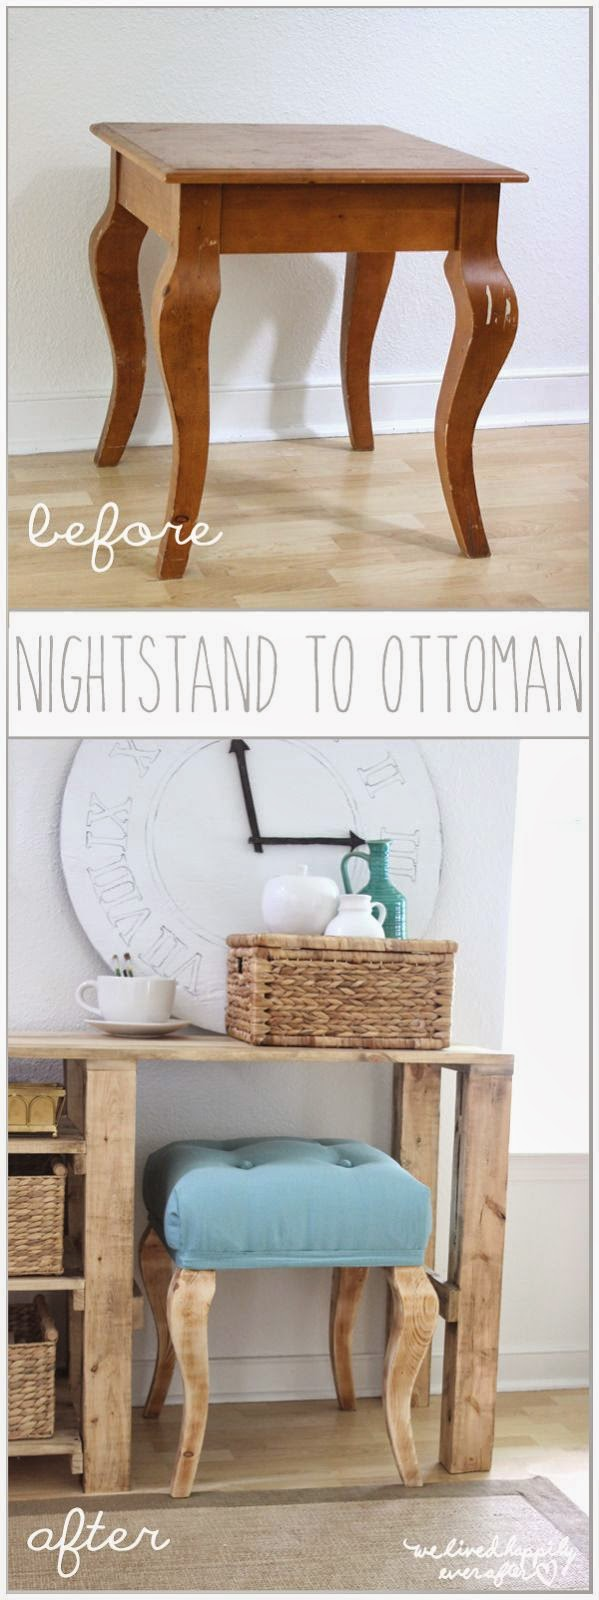 19 diy furniture makeovers do it yourself ideas and projects - Do it yourself furniture ideas ...